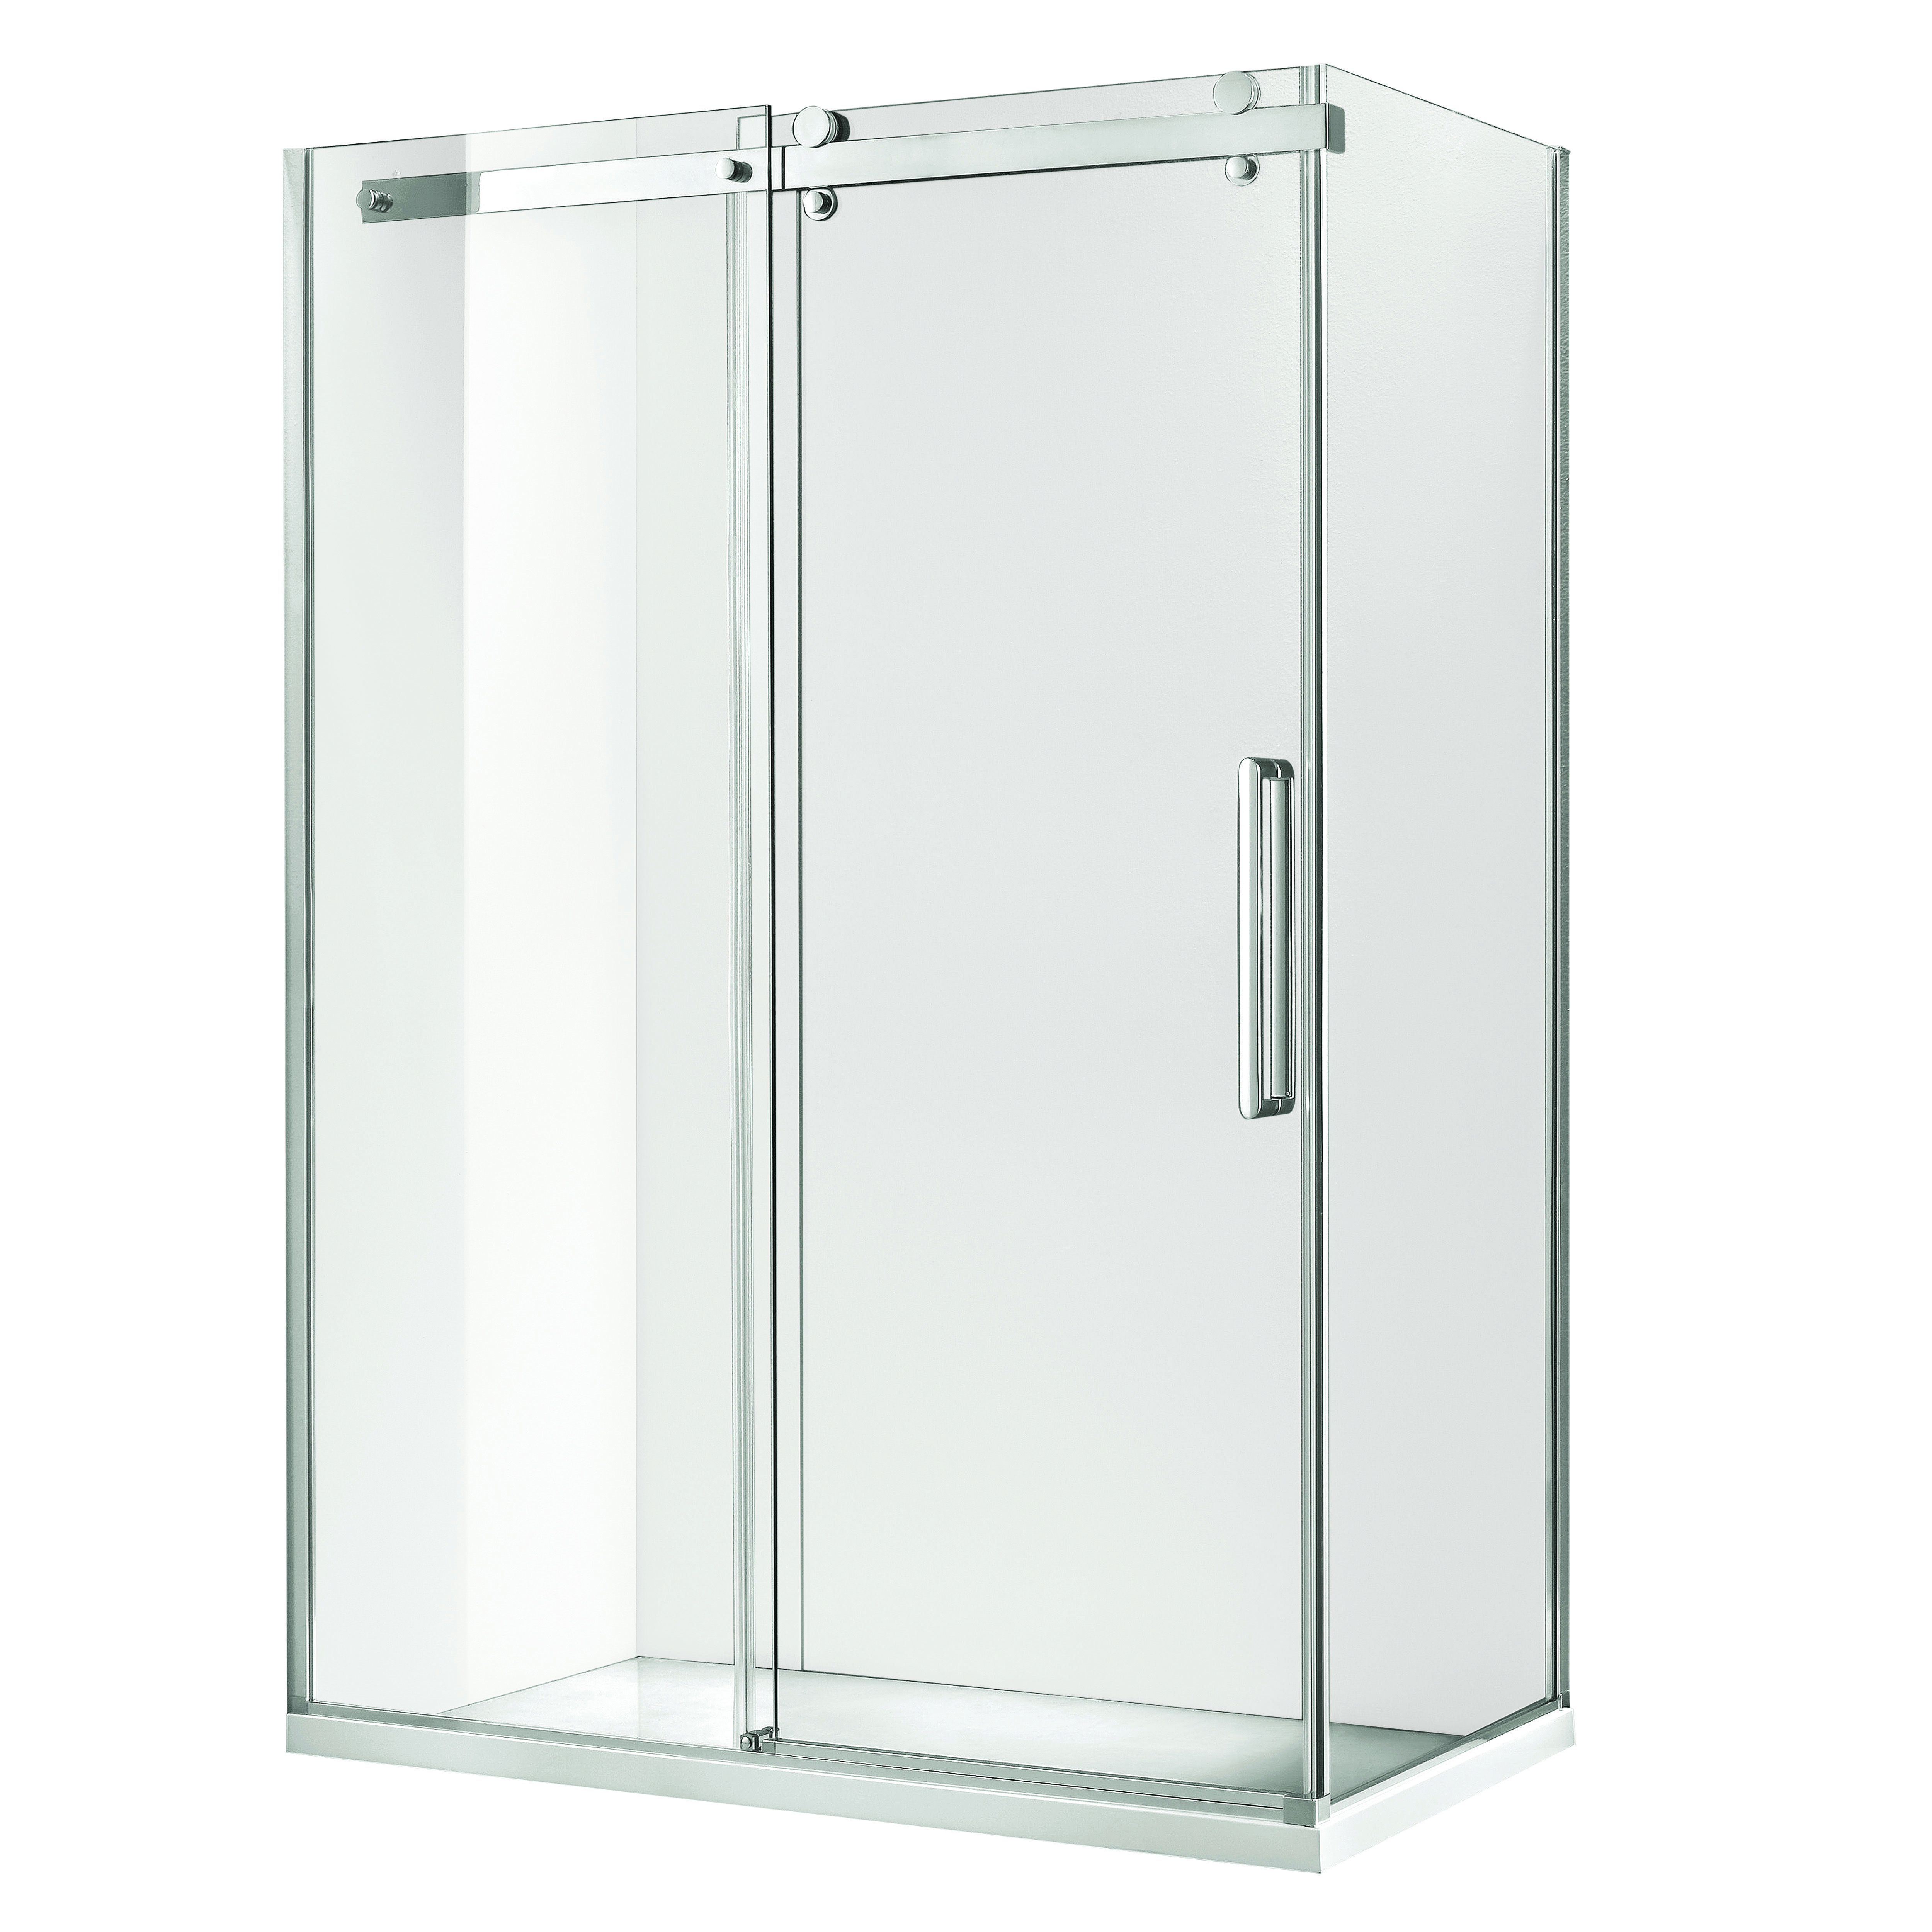 Bunnings Bathroom Vanity Shower Screen Frameless Euro 1200x900x1900mm Sliding Bunnings